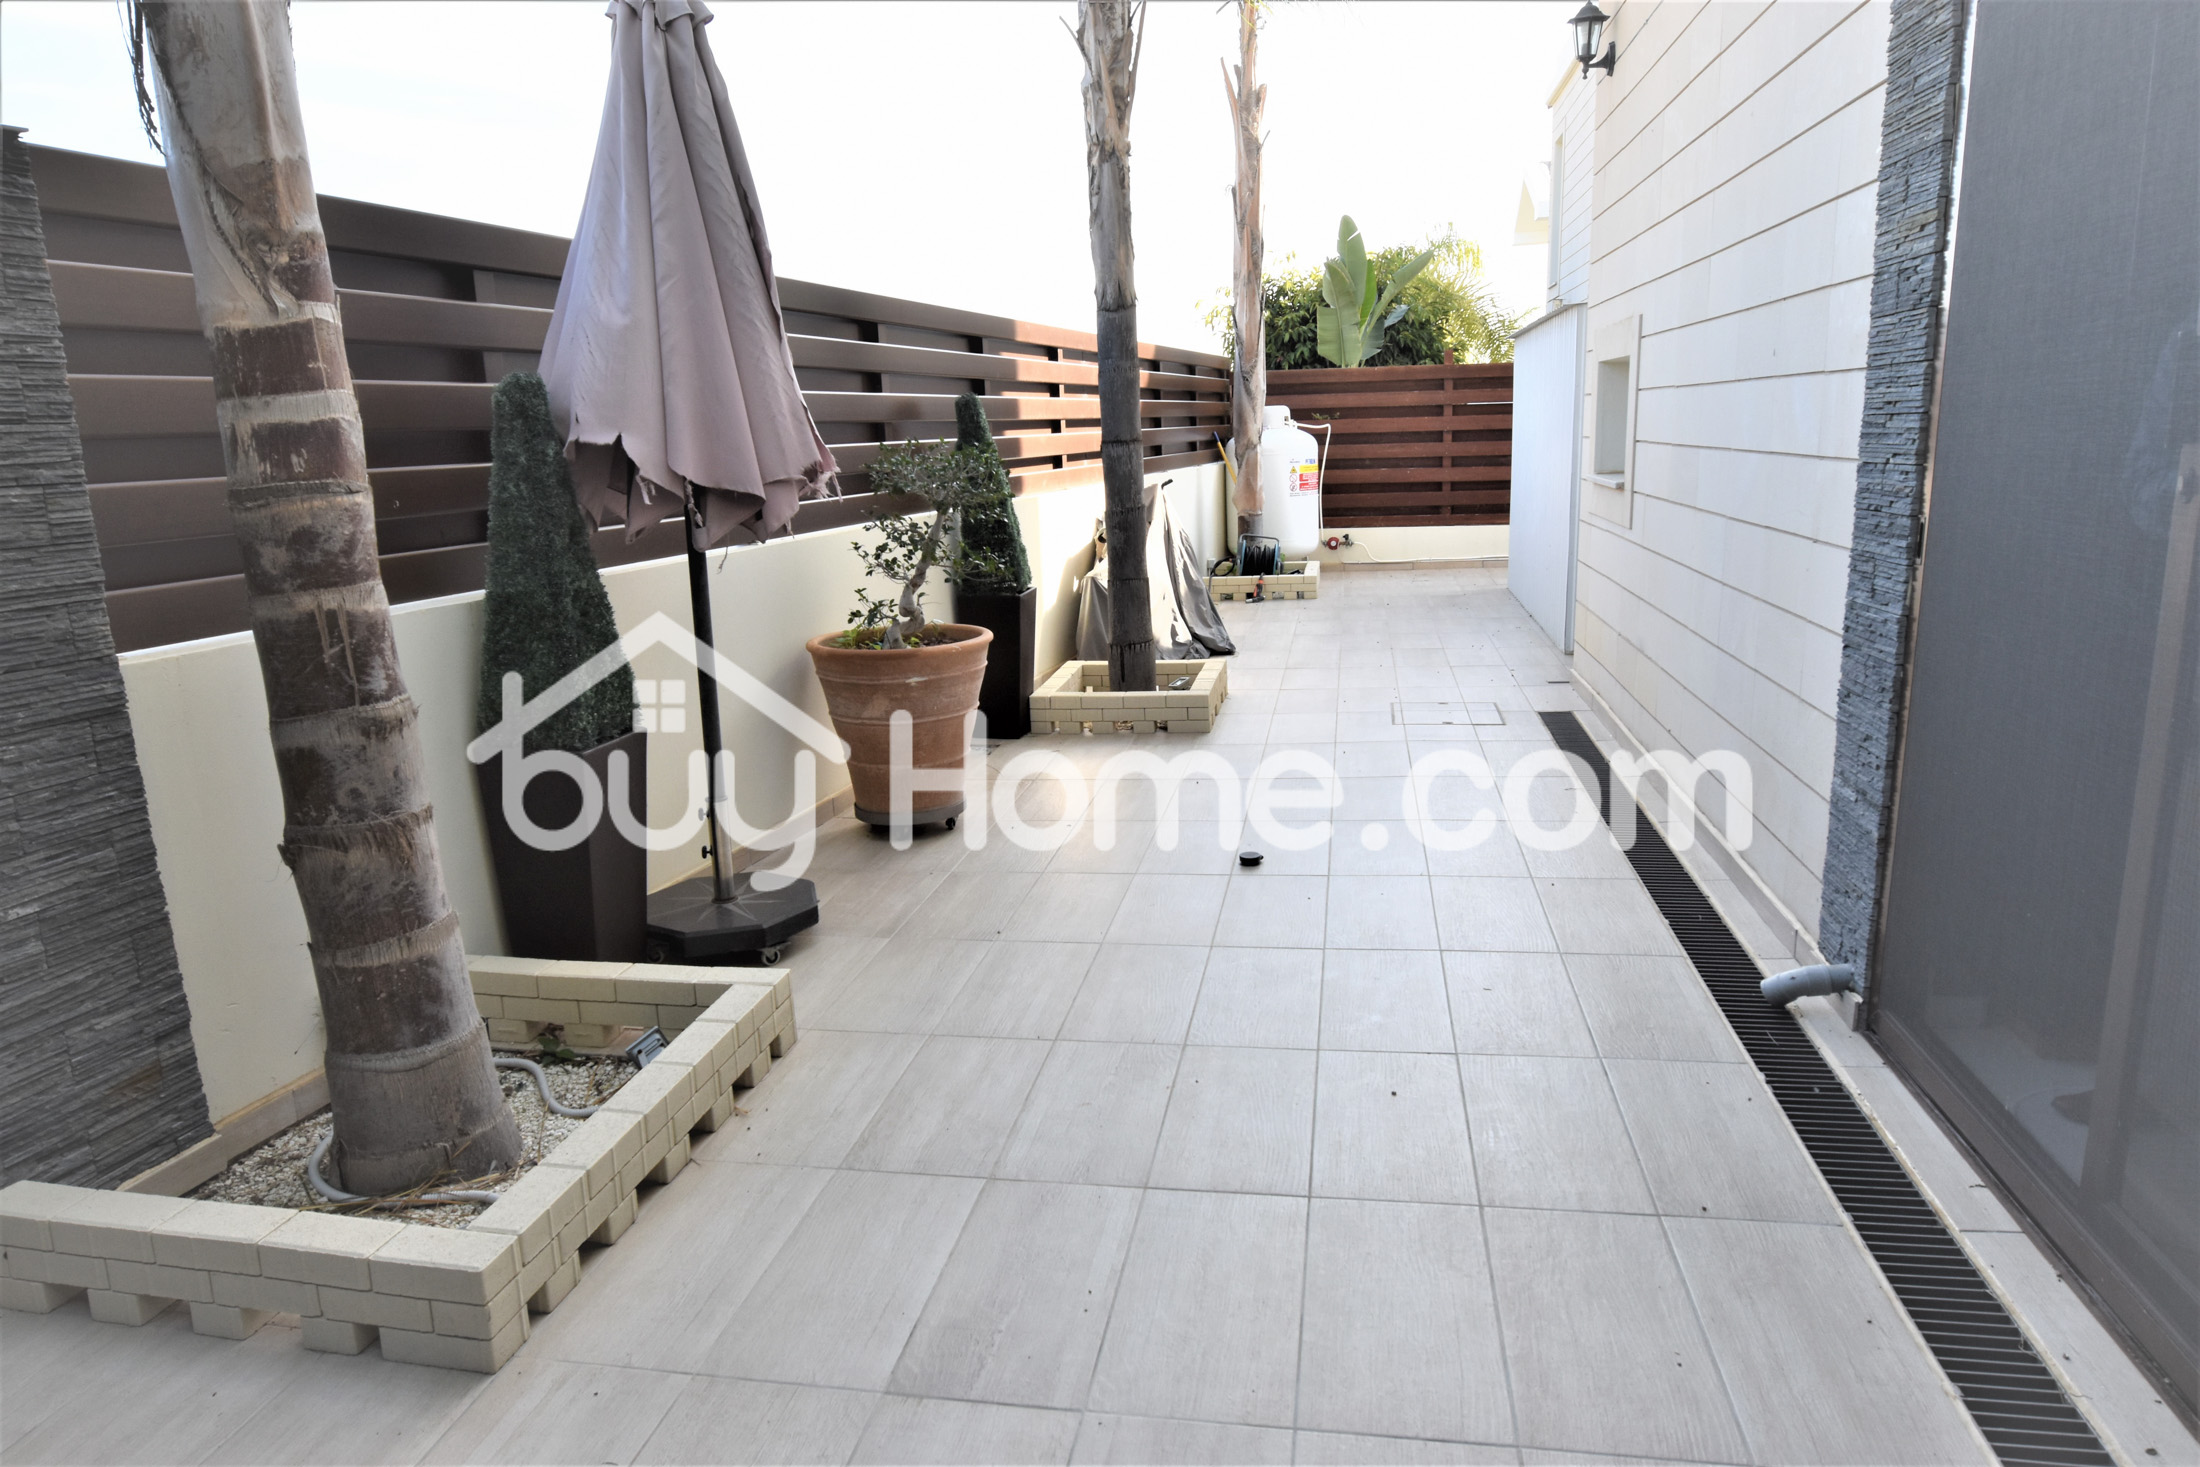 3 Bedroom House | BuyHome